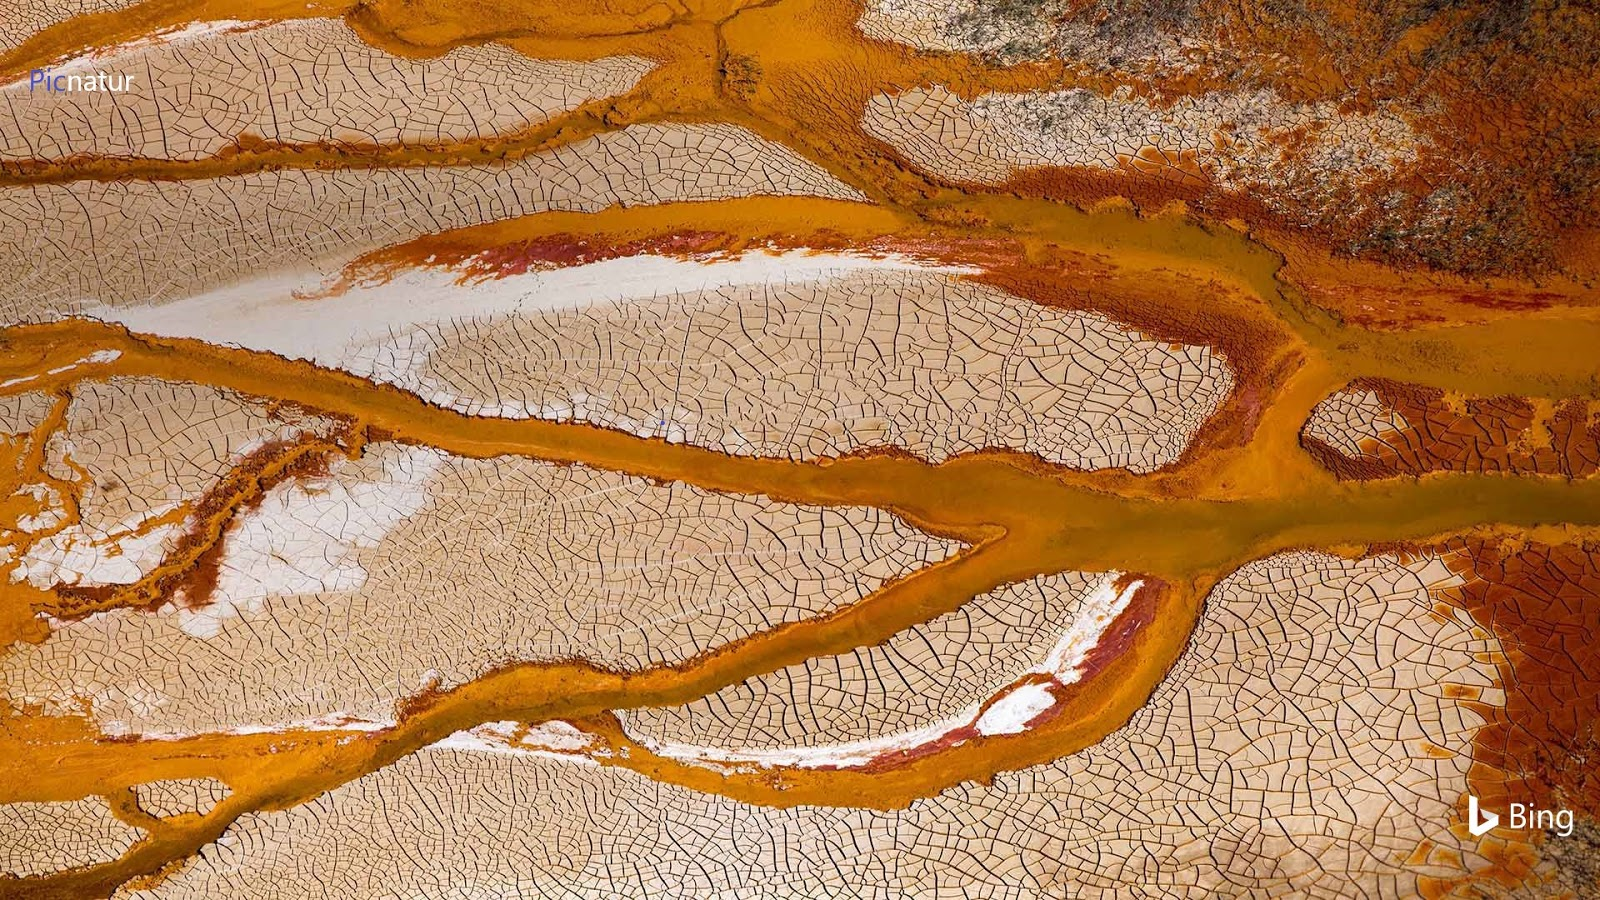 Channels of the Rio Tinto in Spain © Oscar Diez Martinez/Minden Pictures